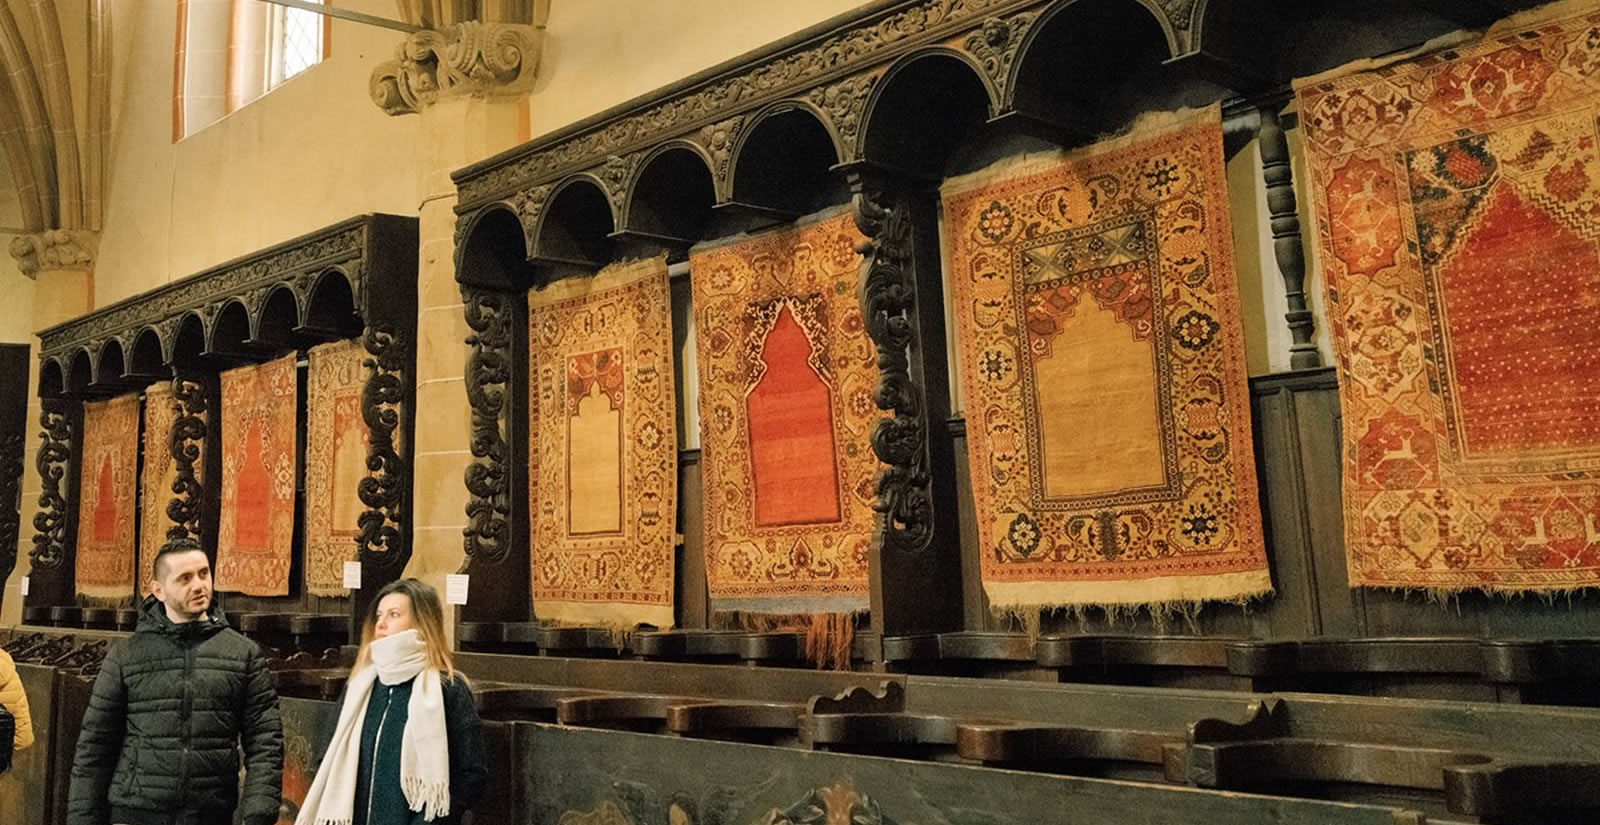 The Ottoman Carpets of Transylvania